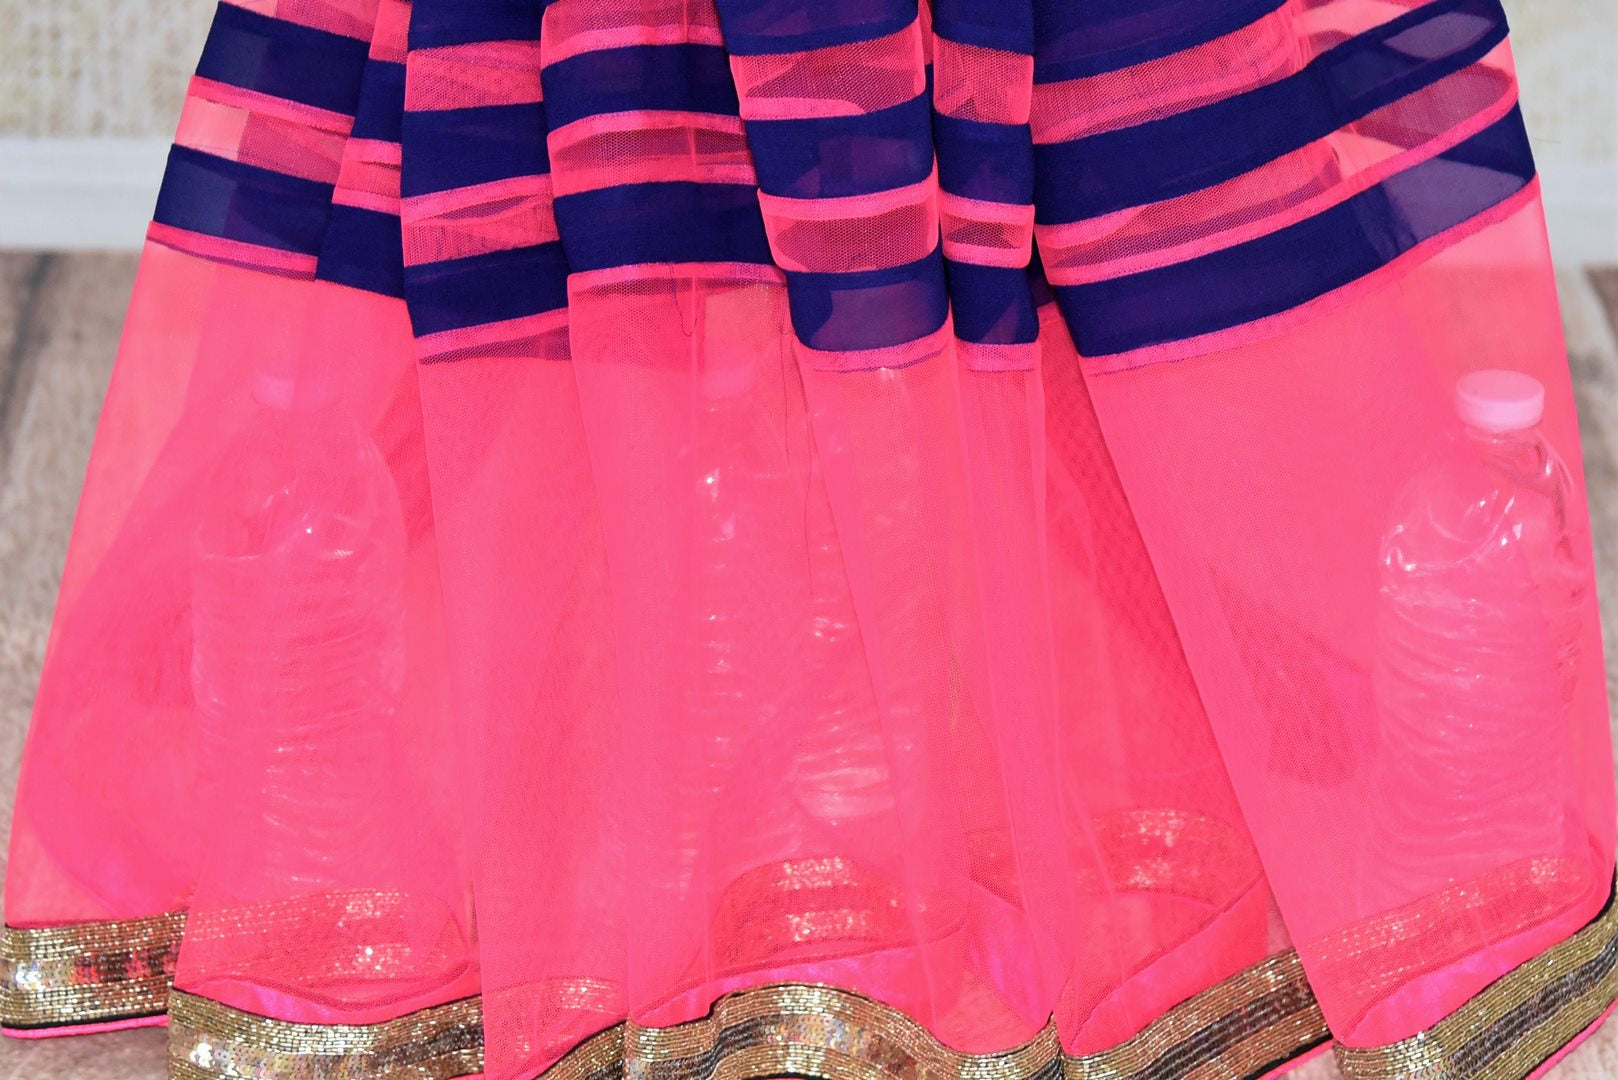 Buy dark blue georgette saree online in USA with pink embroidered net border from Pure Elegance. Let your ethnic style be one of a kind with an exquisite variety of Indian handloom sarees, pure silk sarees, designer sarees from our exclusive fashion store in USA.-pleats